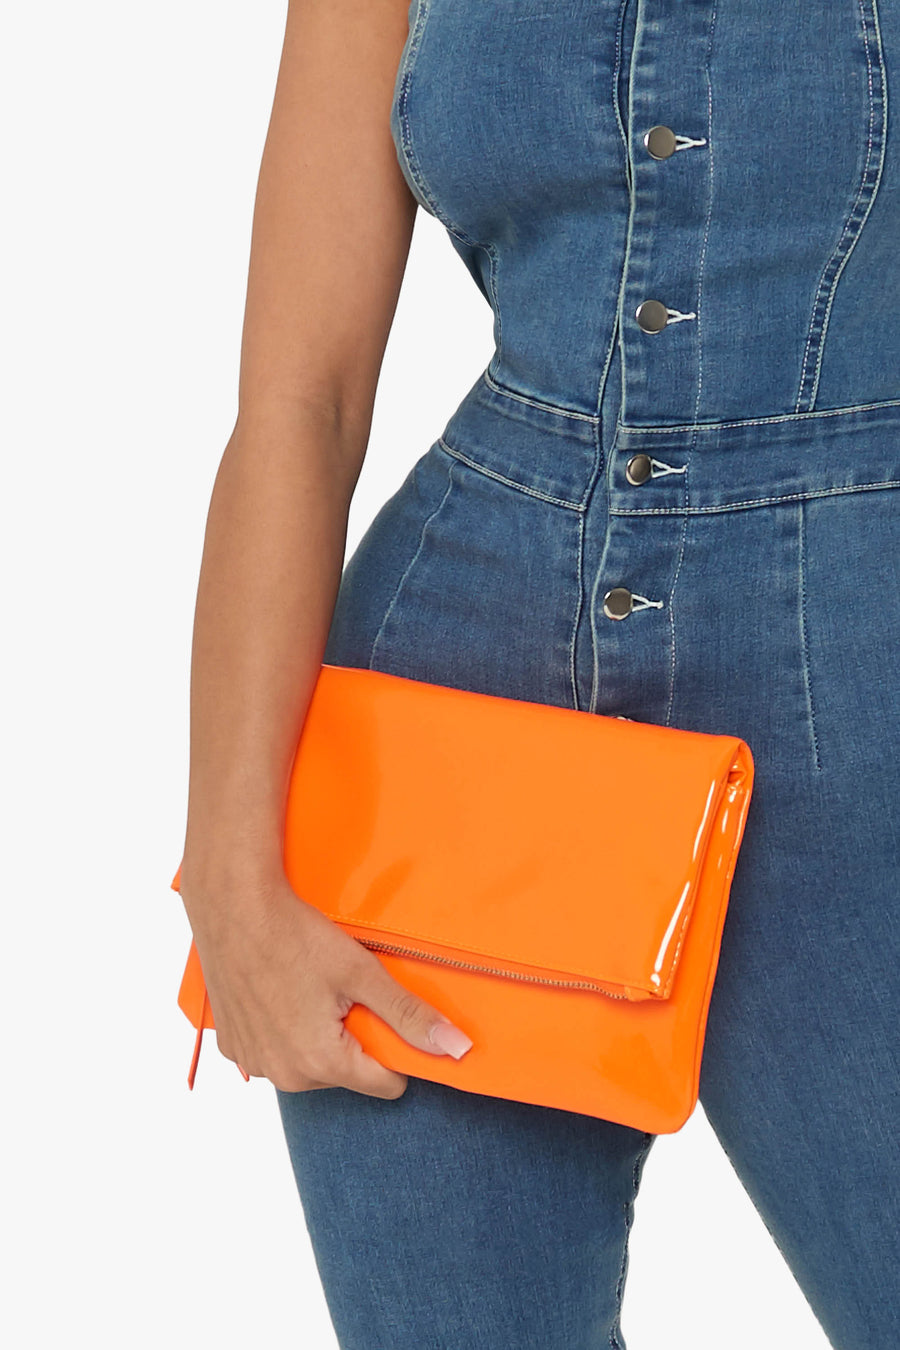 Bright Thoughts Patent Clutch